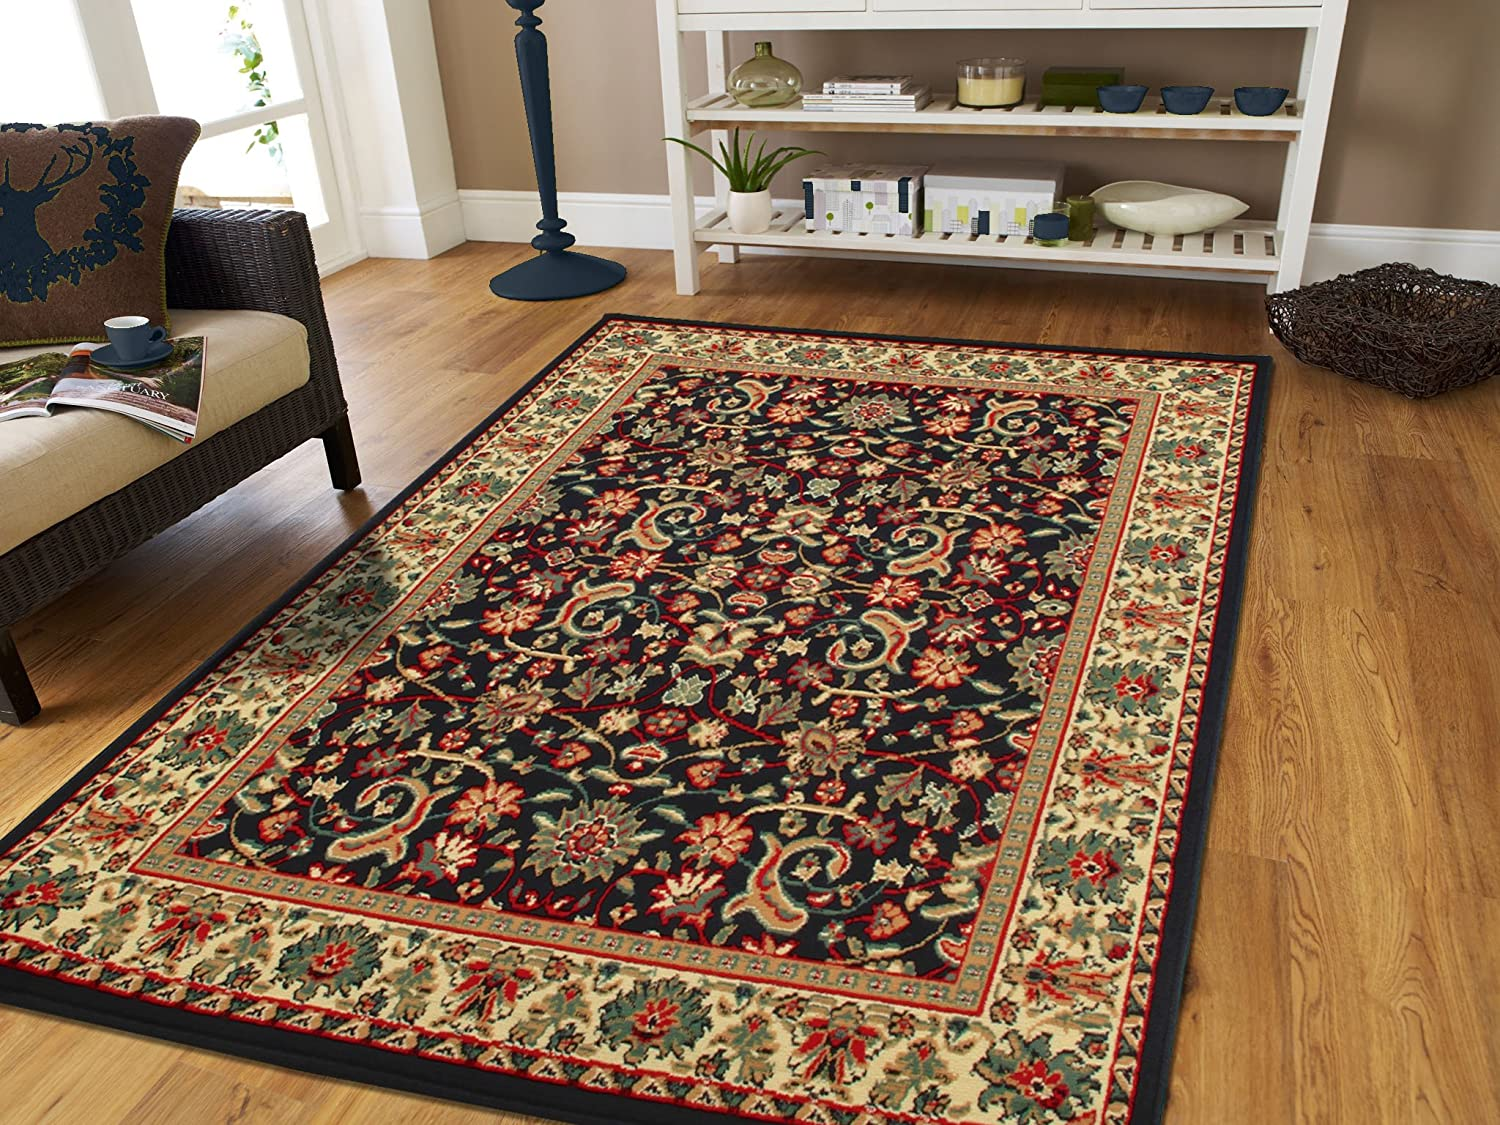 Red Persian Rugs for Living Room 5x8 Red Rugs for Bedroom & Office Rug Reds  Green, Cream, Black Area Rugs 5x7 Under 50